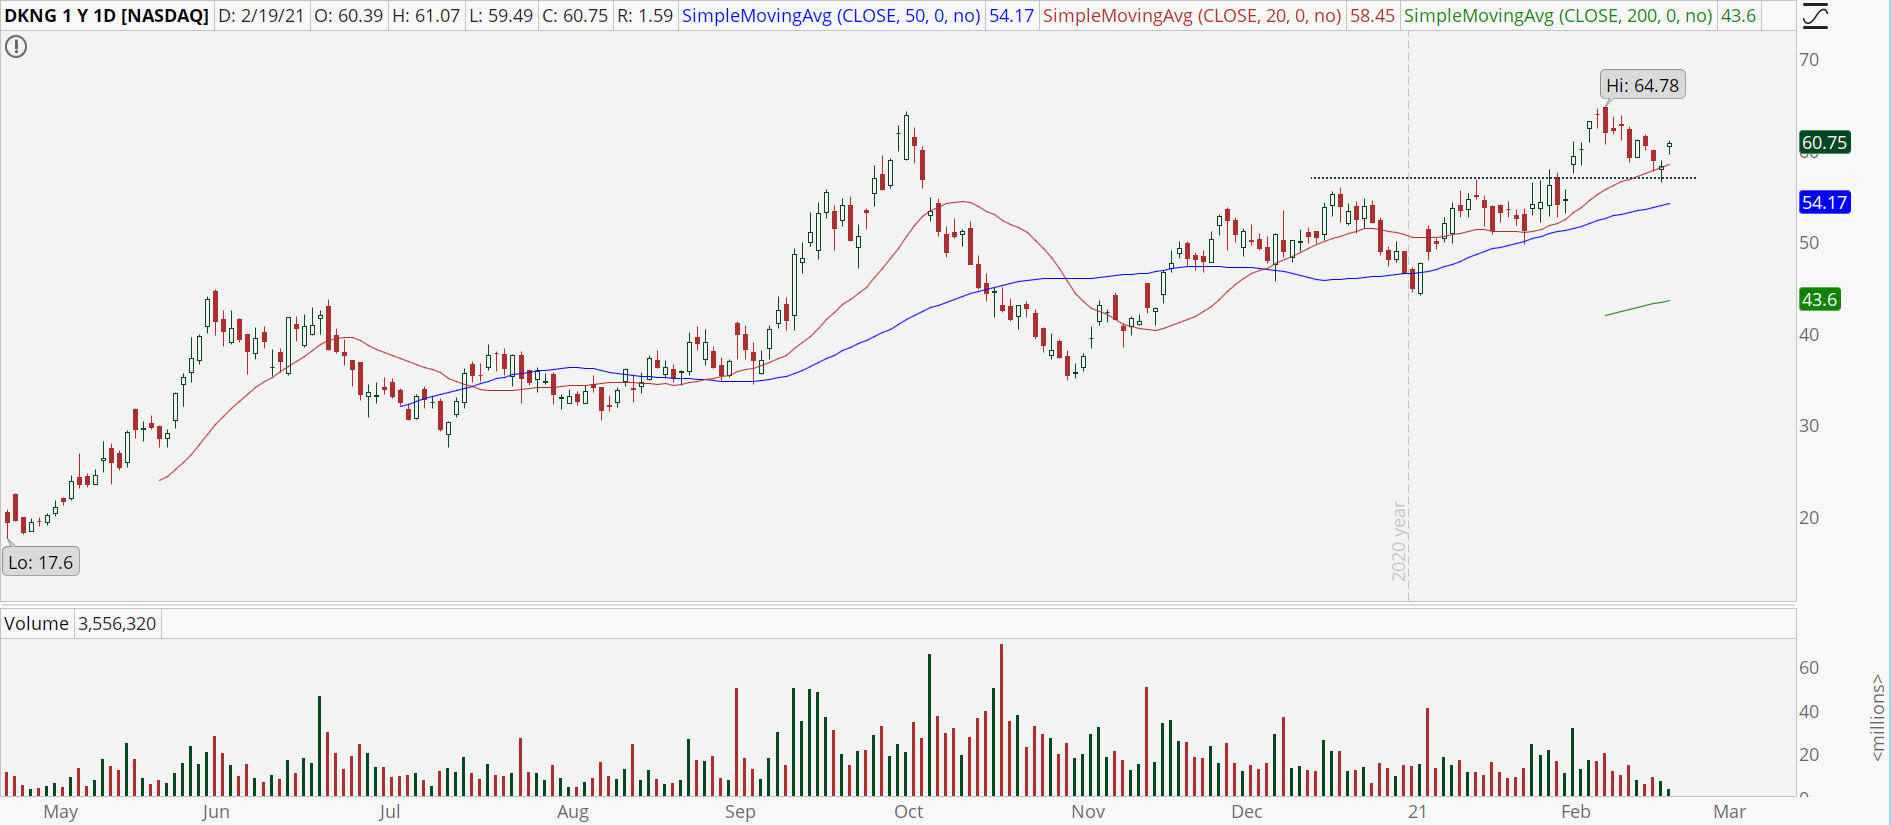 DraftKings (DKNG) stock with bull retracement pattern